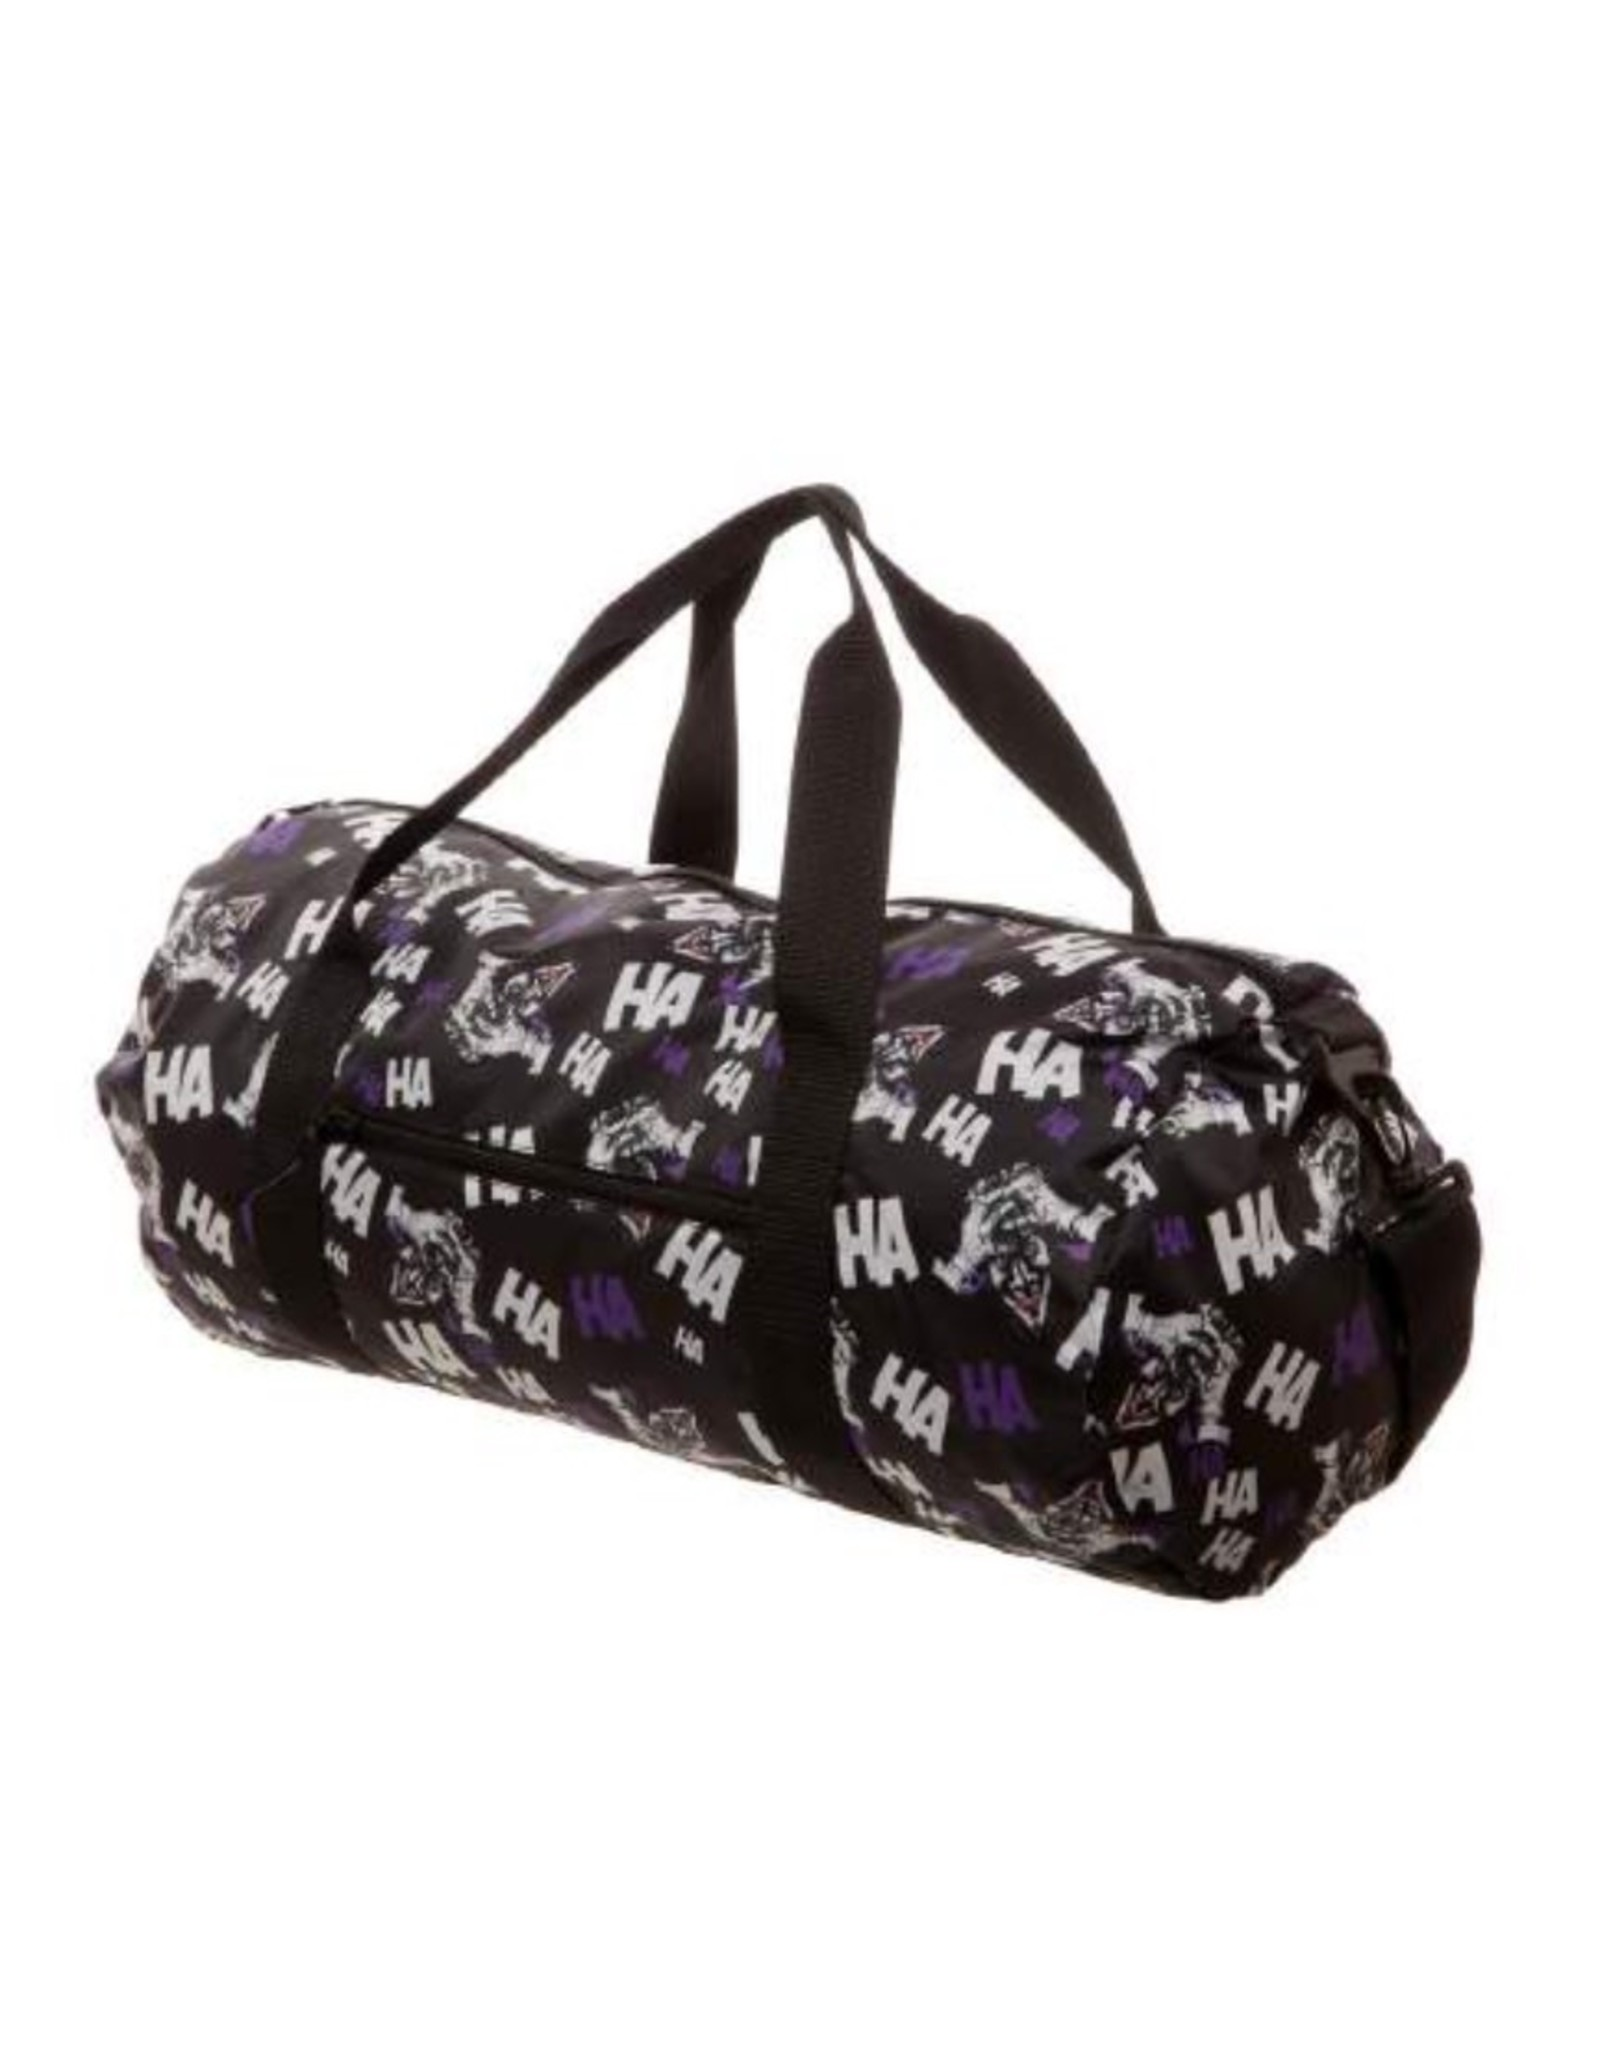 DC COMICS - Joker Packable Duffle Bag